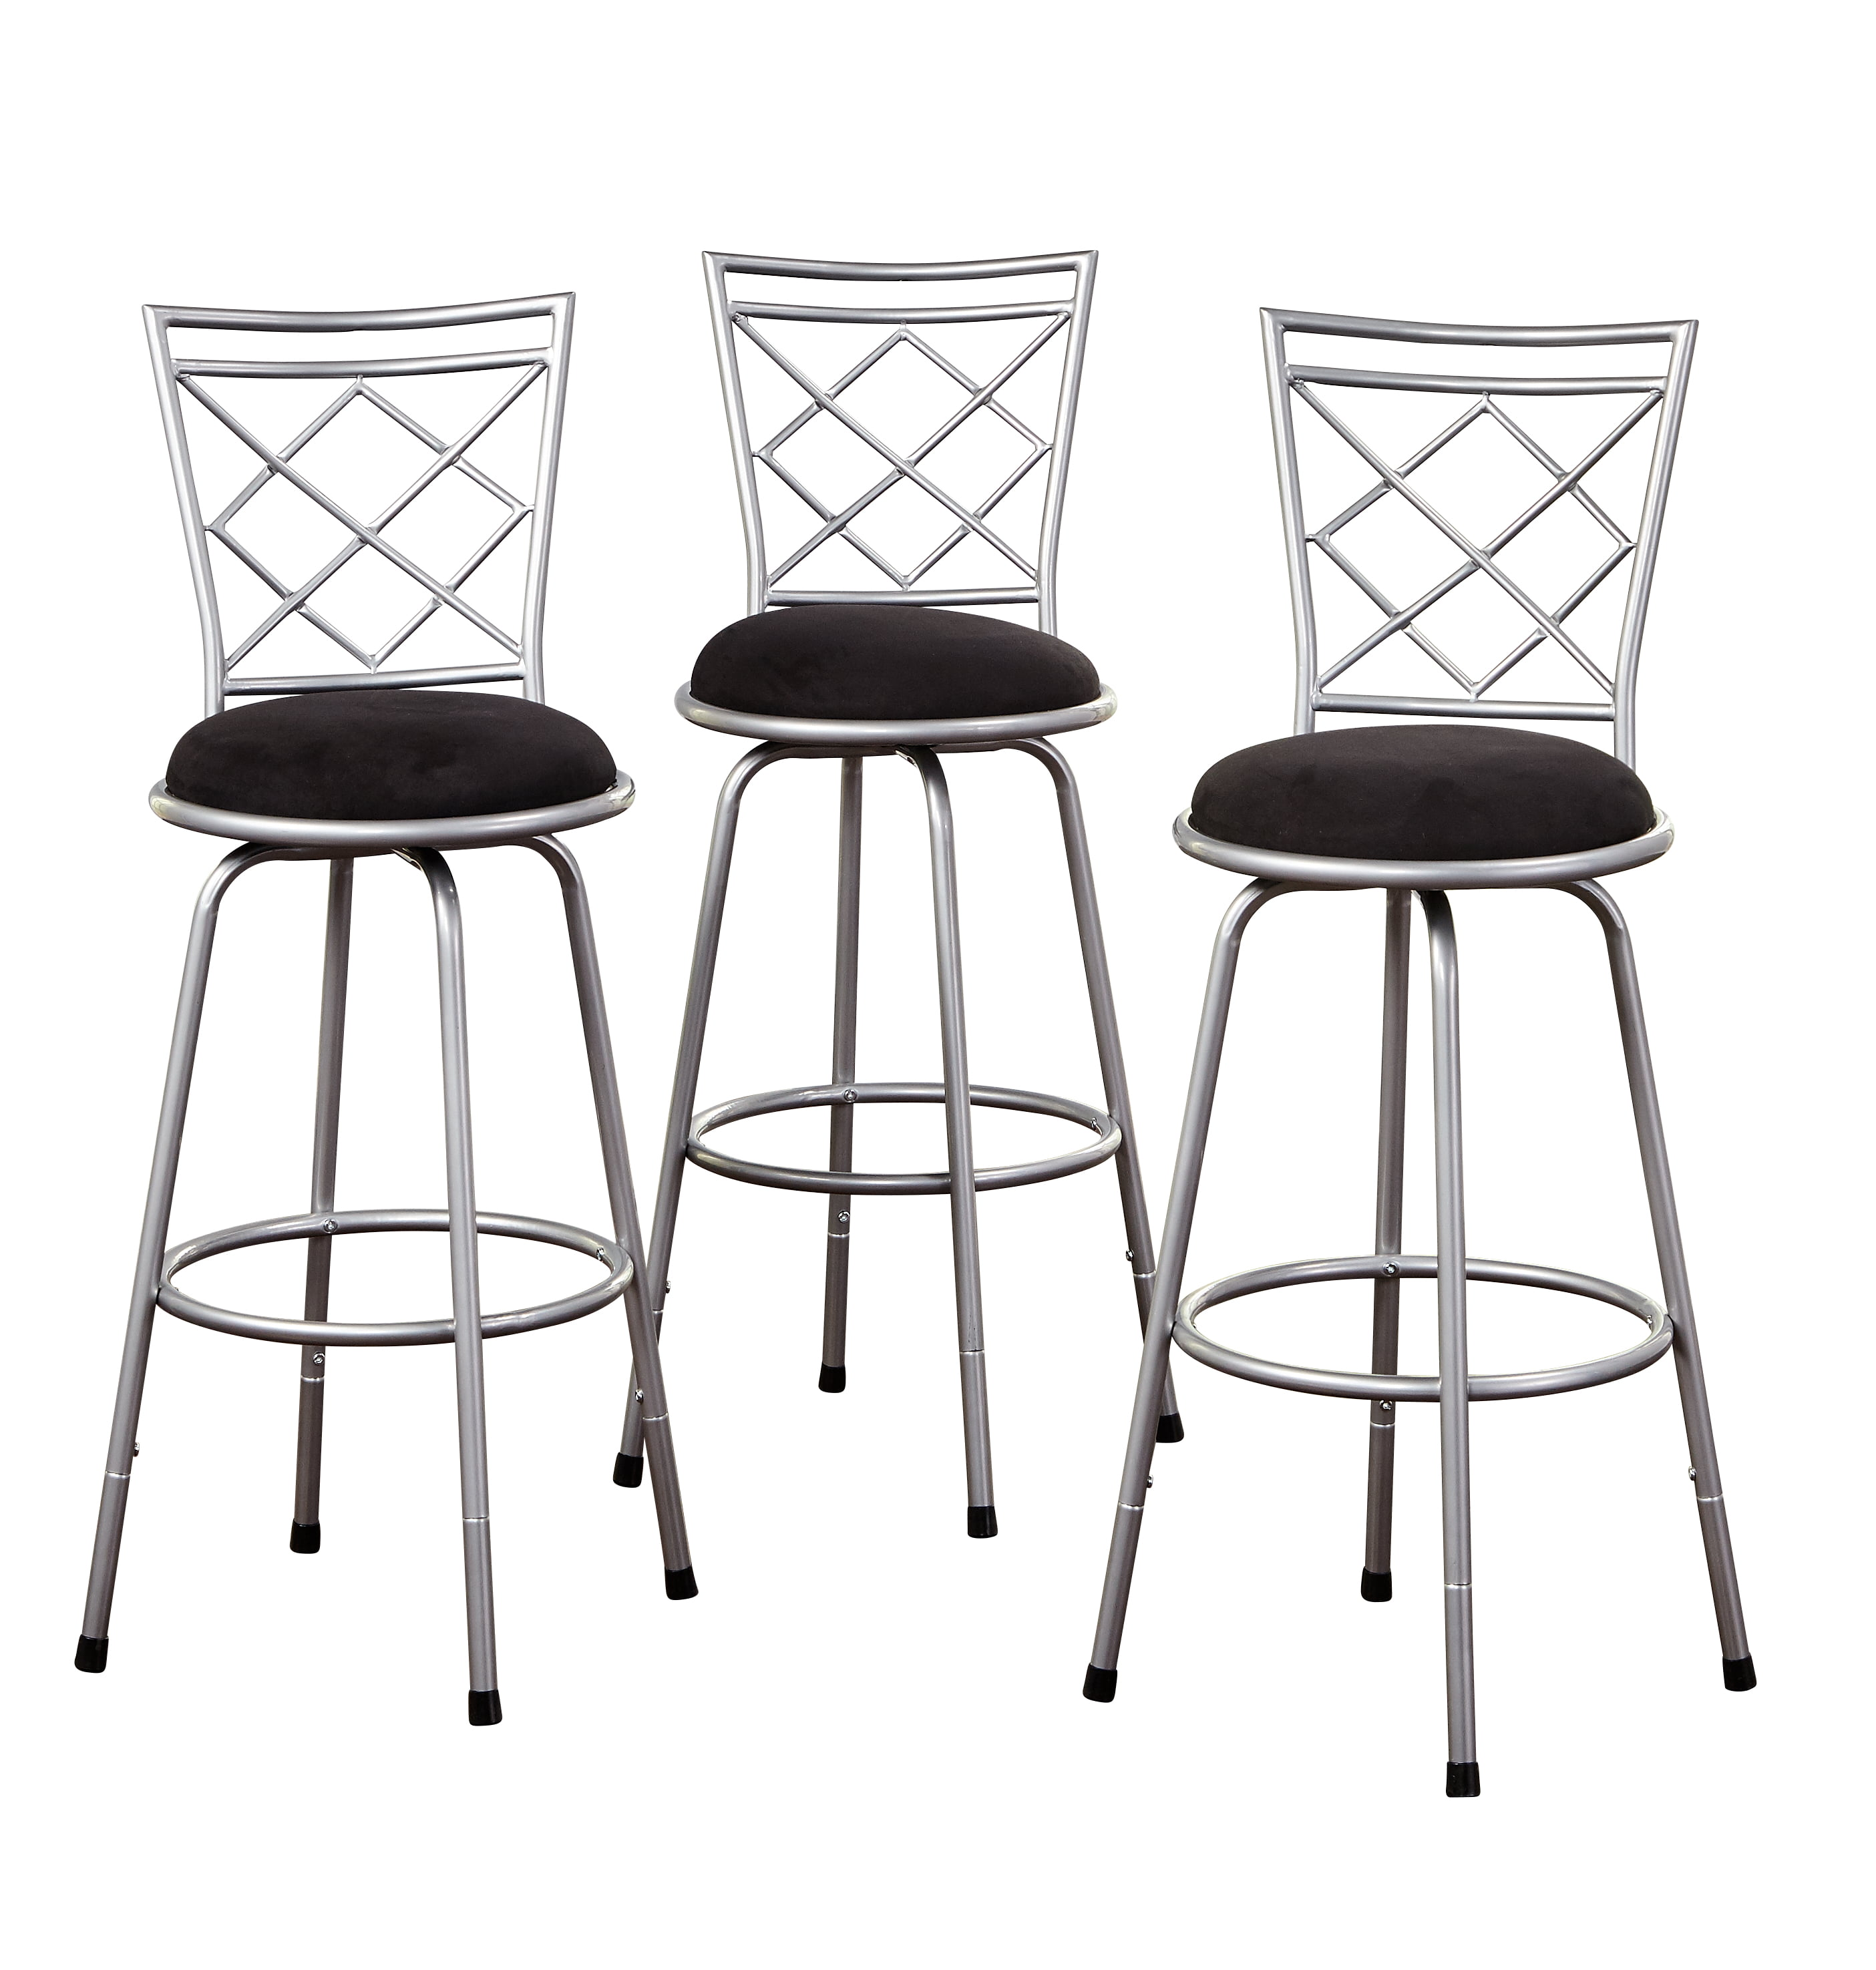 Bar Stools Set Of 3 High Seat Chairs Adjustable Swivel